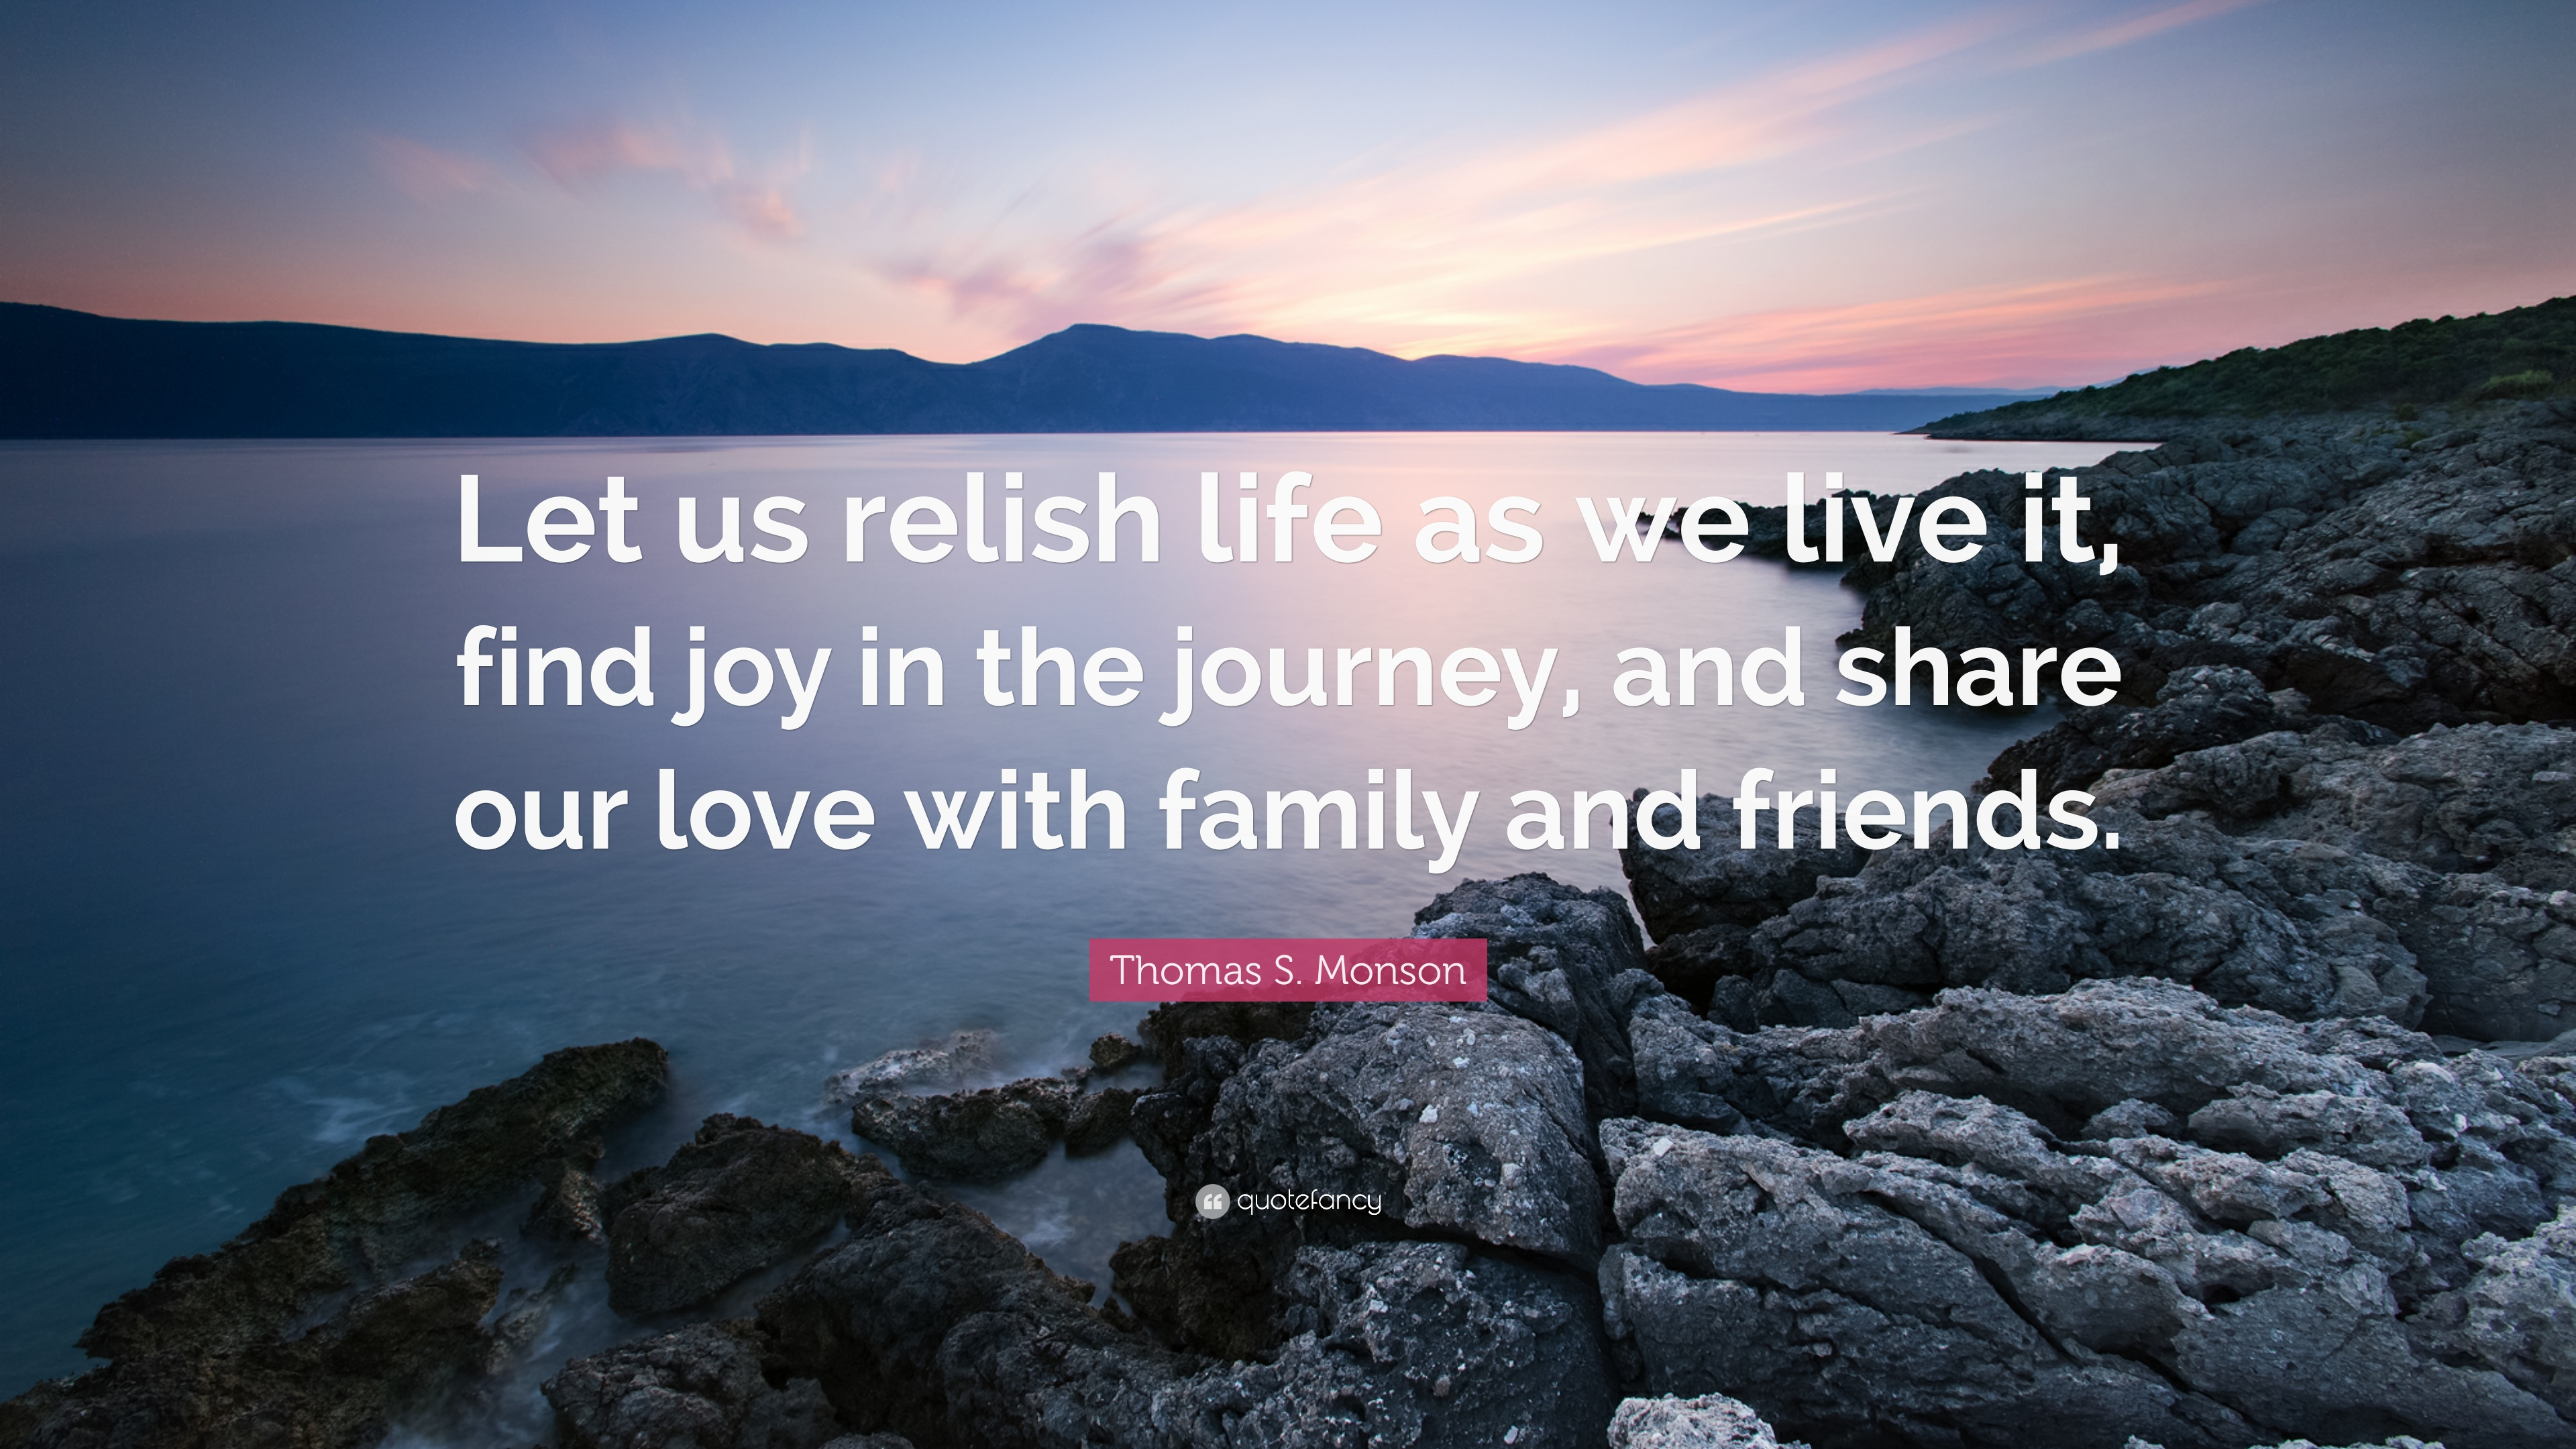 Thomas S Monson Quote Let Us Relish Life As We Live It Find Joy